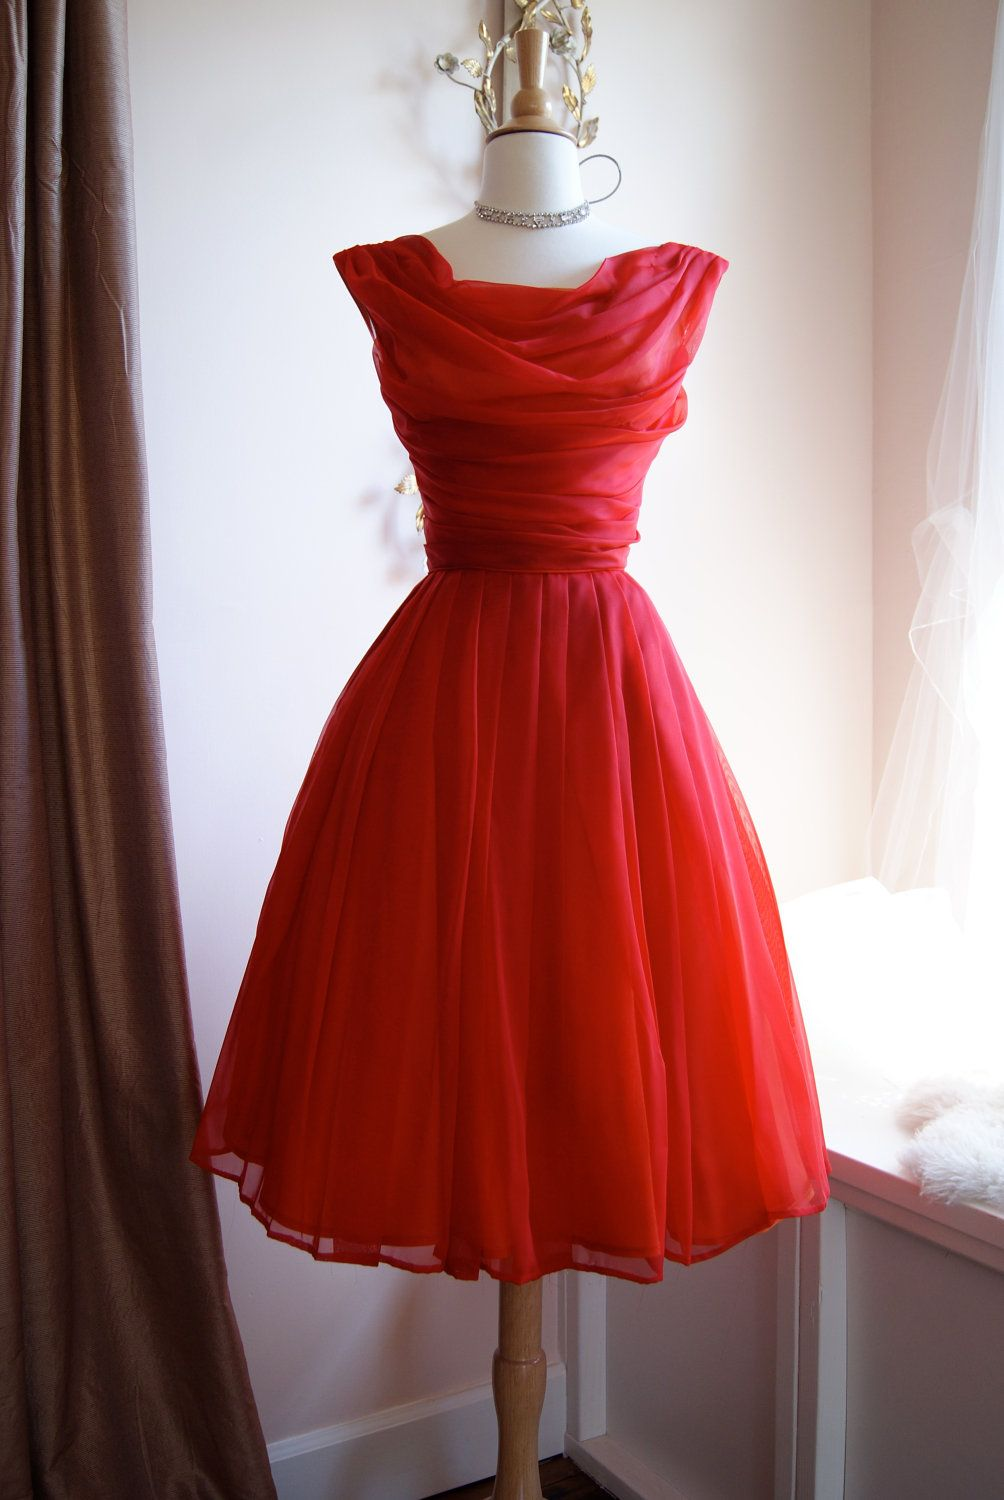 d30b2c72c419 Vintage 1960s siren red chiffon cocktail party dress. | History ...